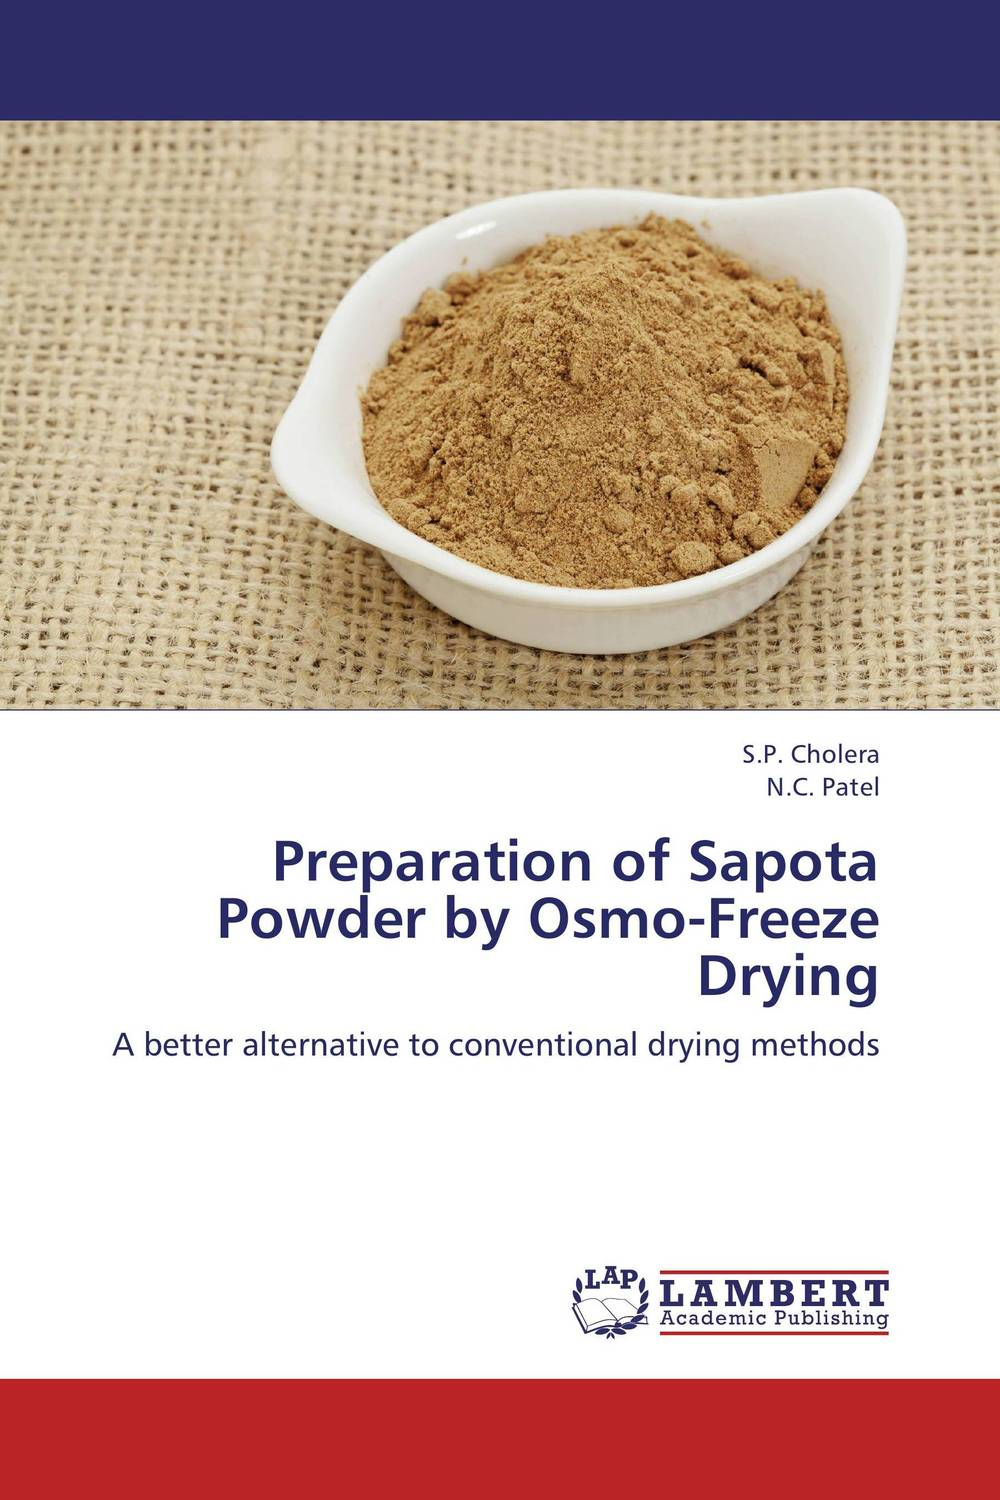 Preparation of Sapota Powder by Osmo-Freeze Drying the teeth with root canal students to practice root canal preparation and filling actually